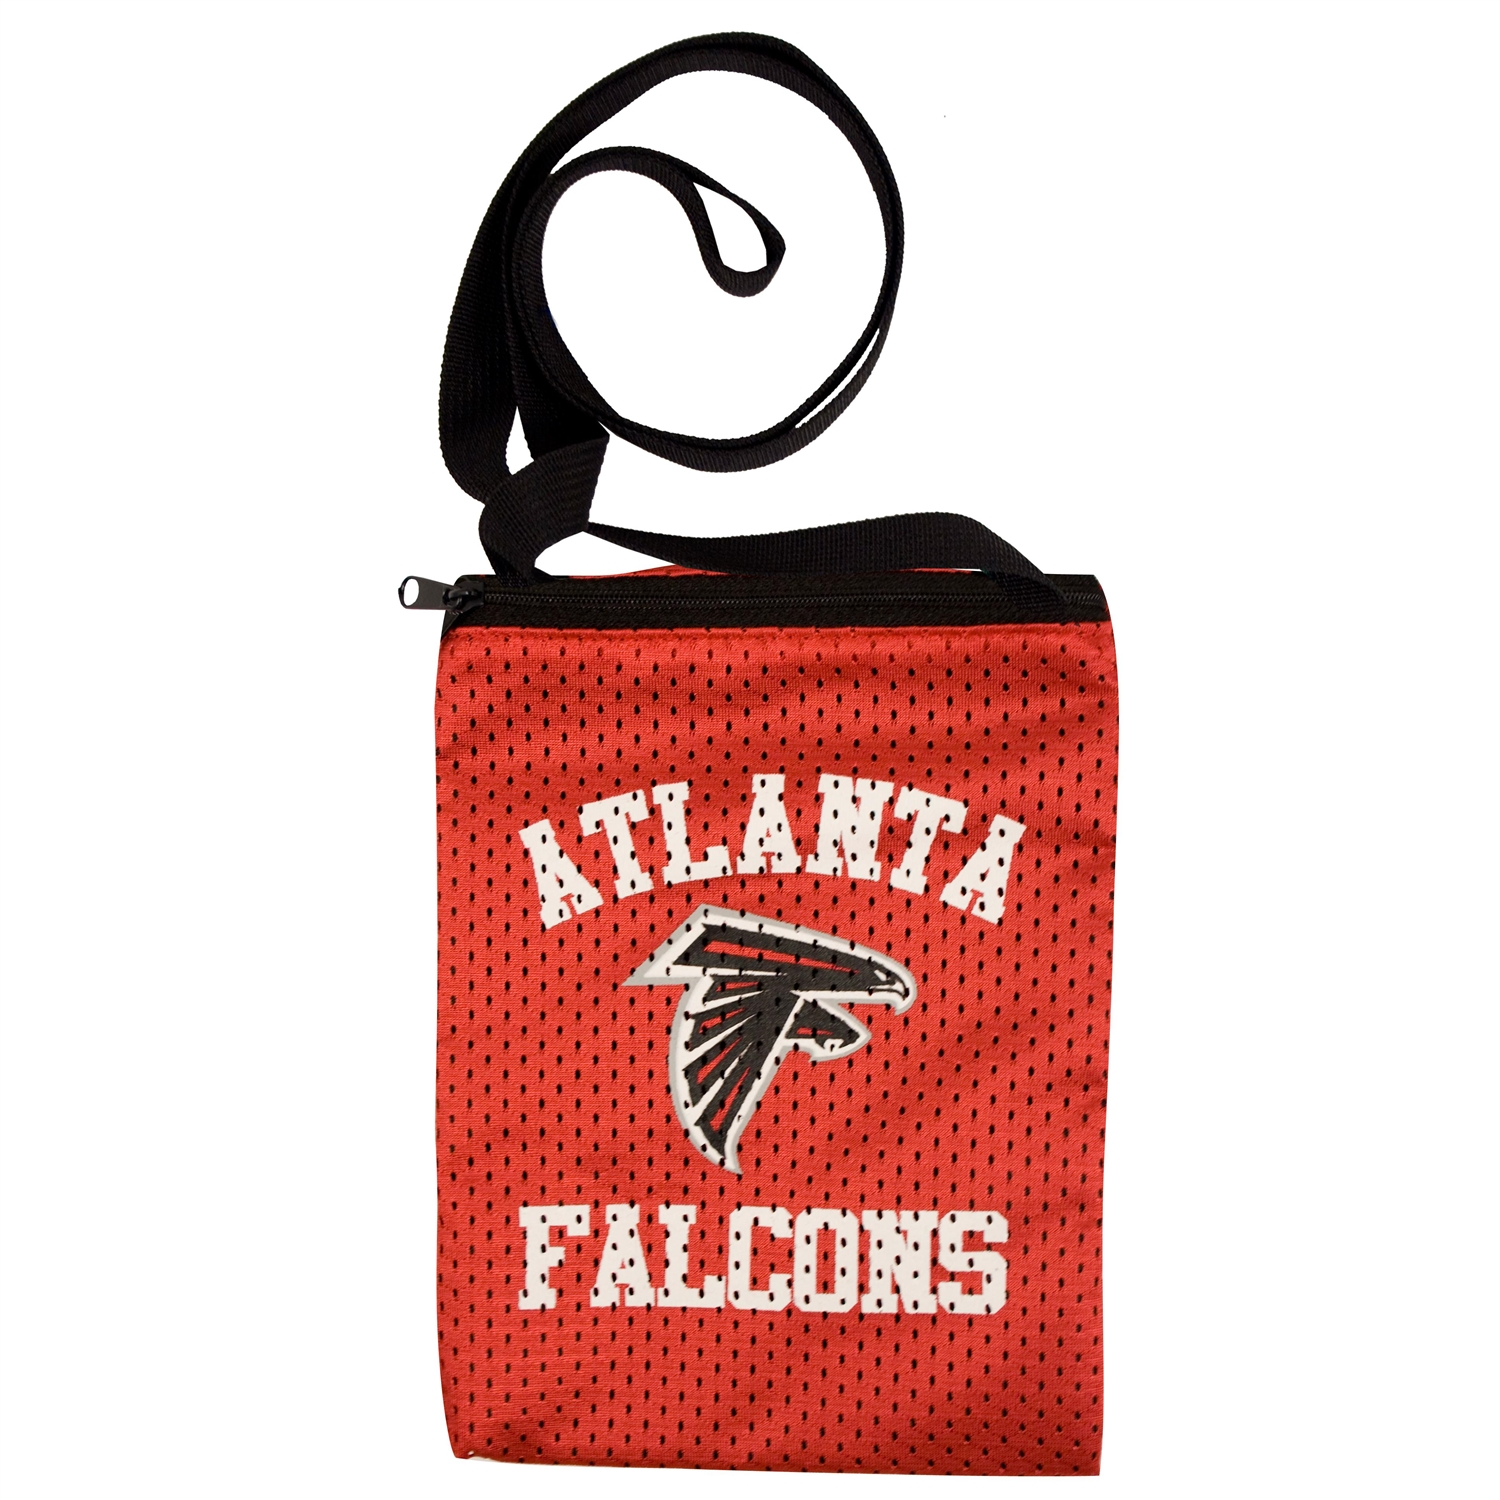 Nfl Football Atlanta Falcons Toys Games Puzzles Games - 300103-falc - Atlanta Falcons Game Day Pouch 300103-FALC